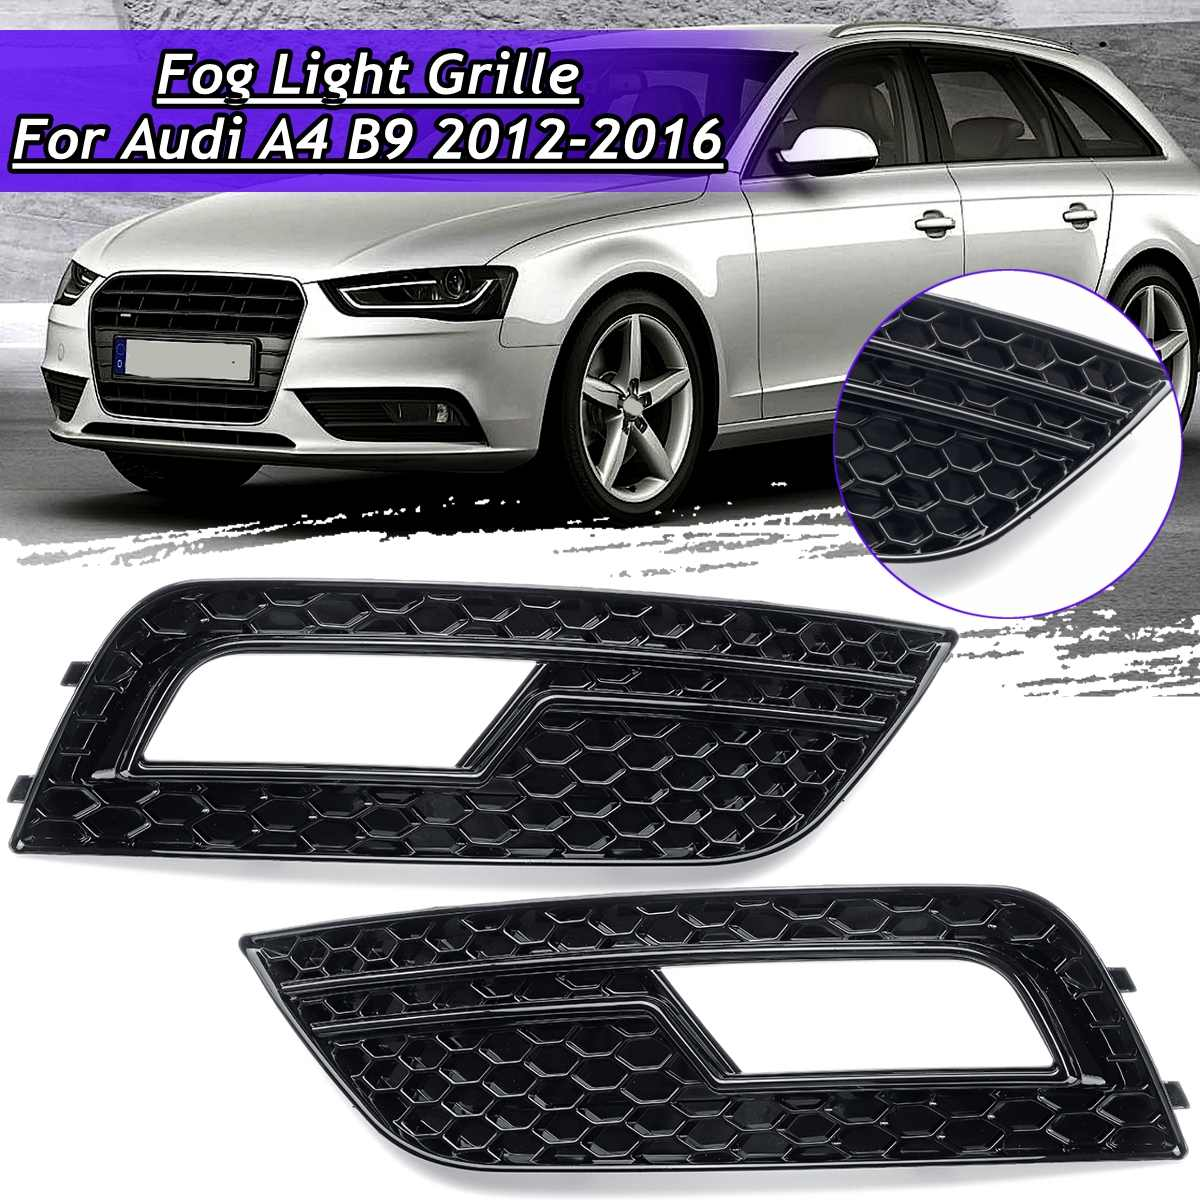 Pair Front Bumper Fog Light Grill Grilles Cover Glossy Black For Audi A4 B9 2012 2013 2014 2015 2016|Racing Grills| |  - title=